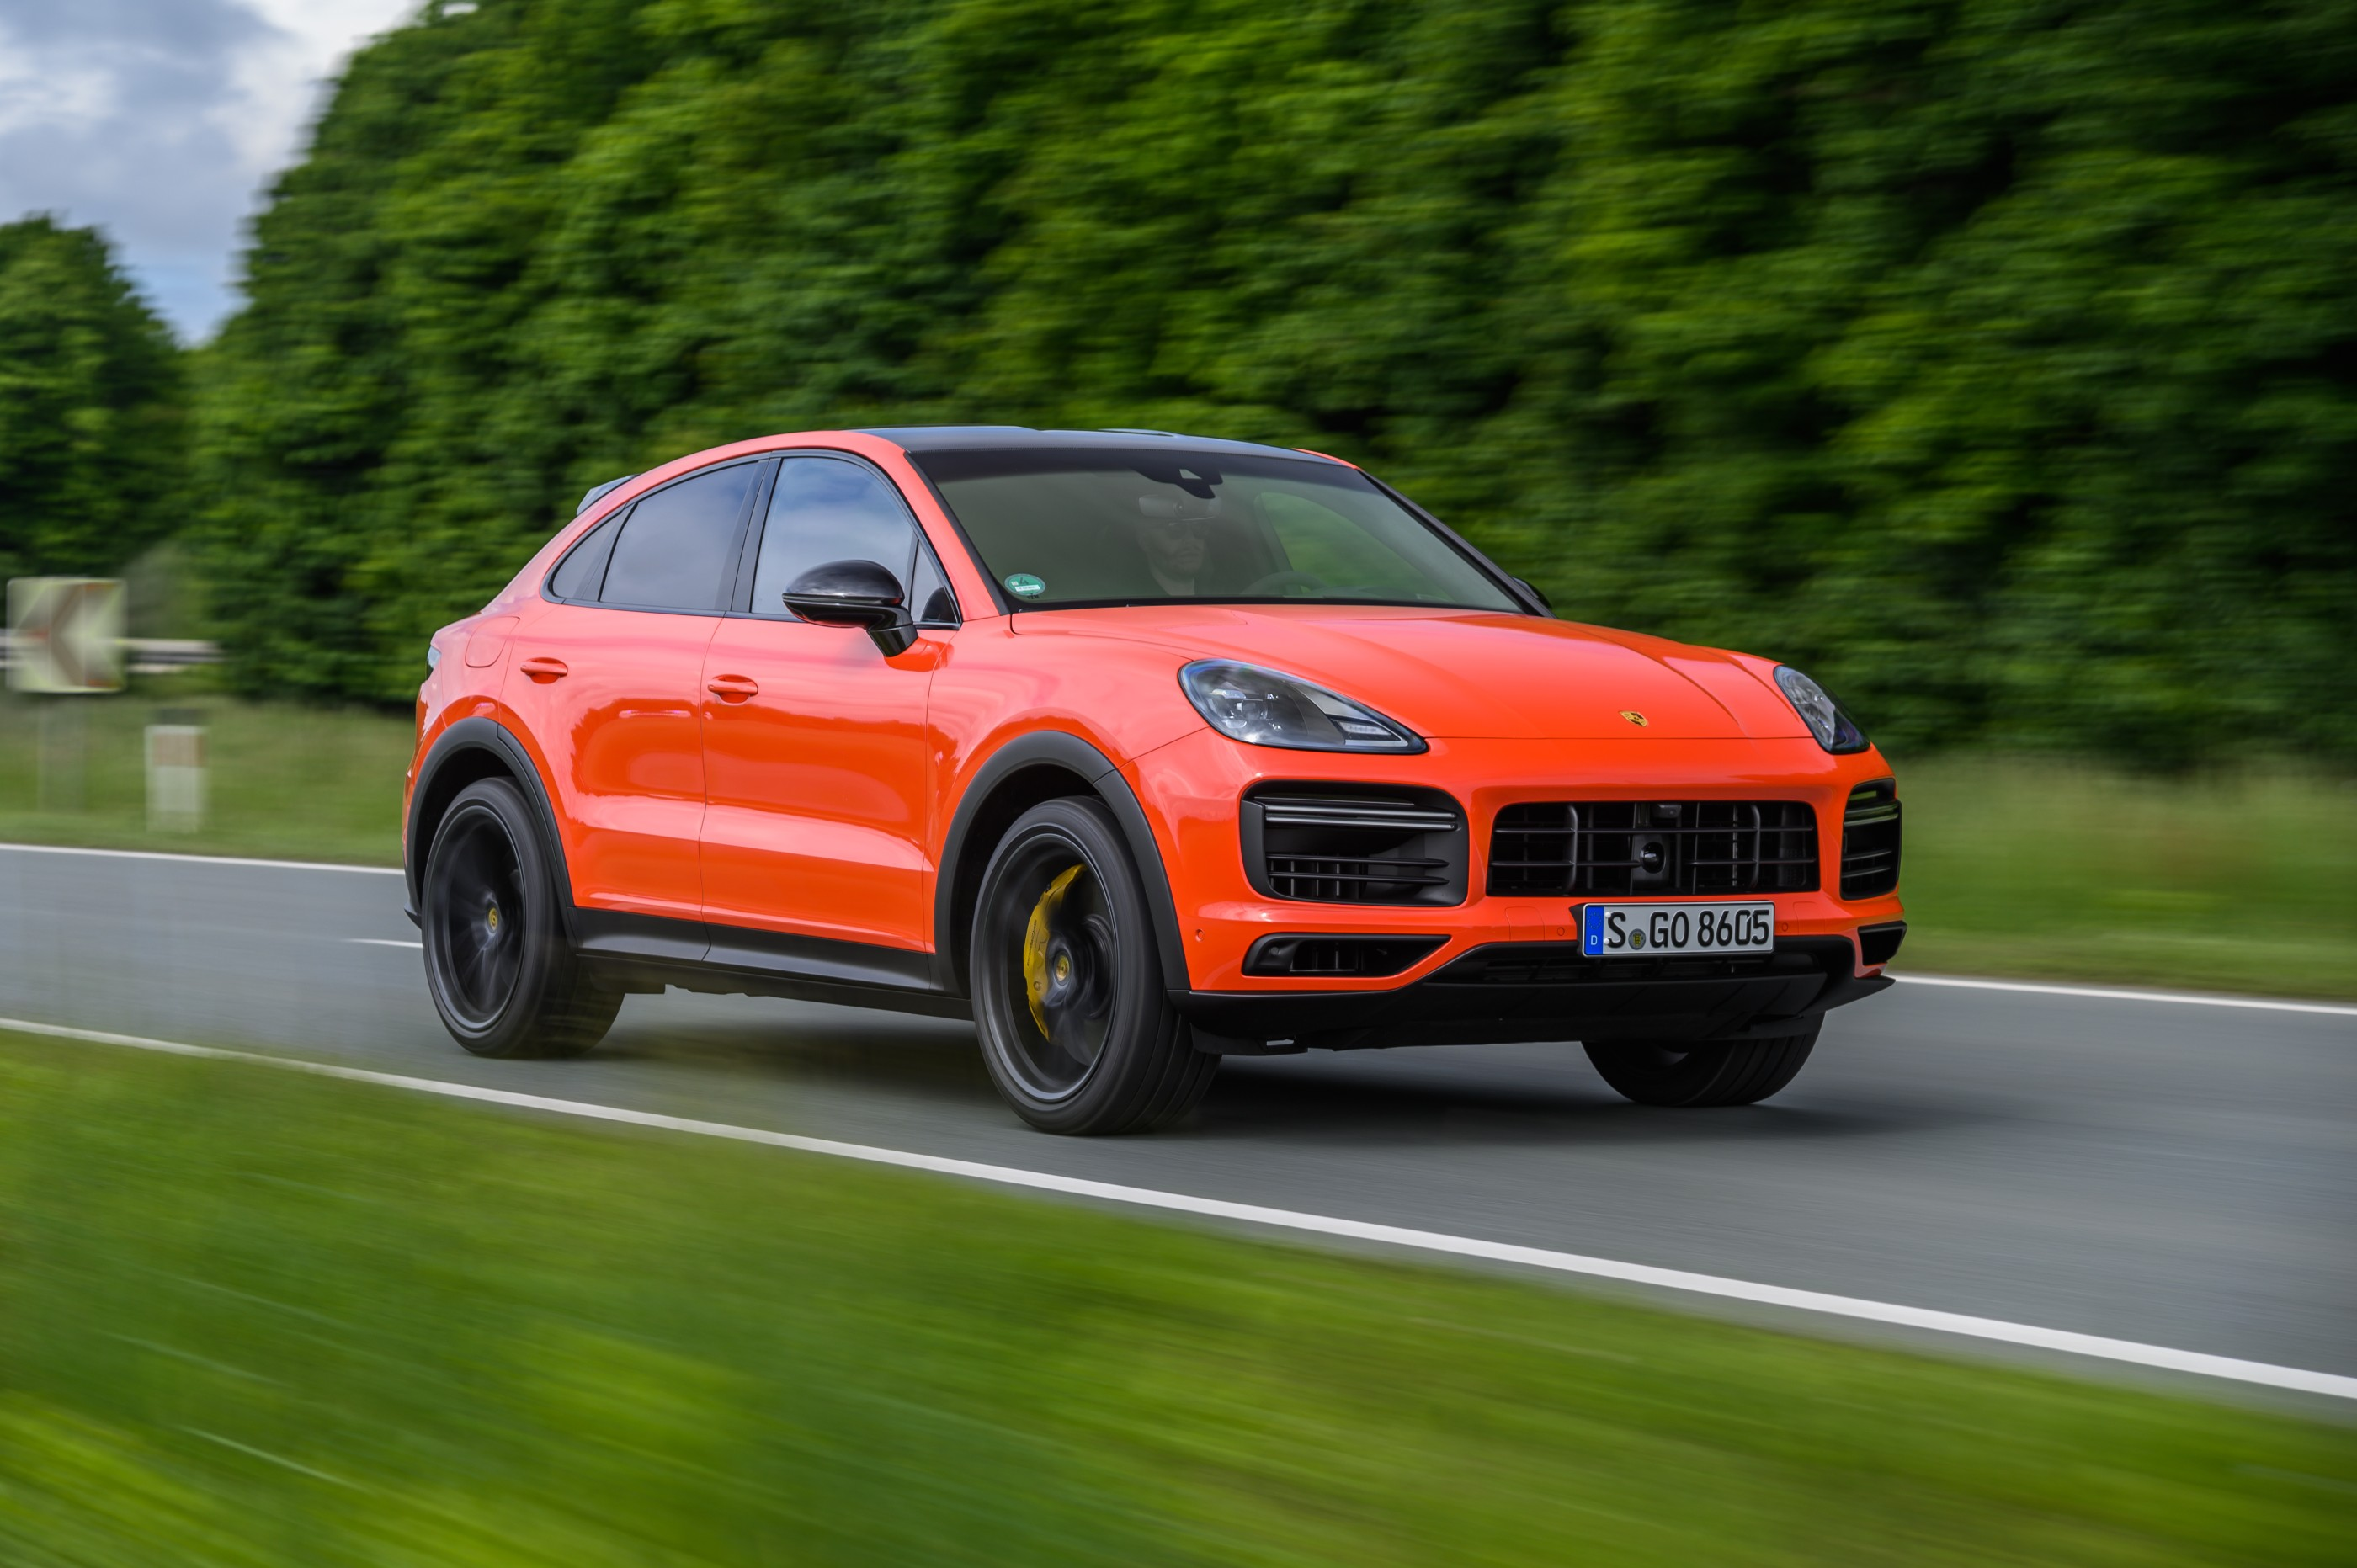 New And Used Porsche Cayenne Prices Photos Reviews Specs The Car Connection